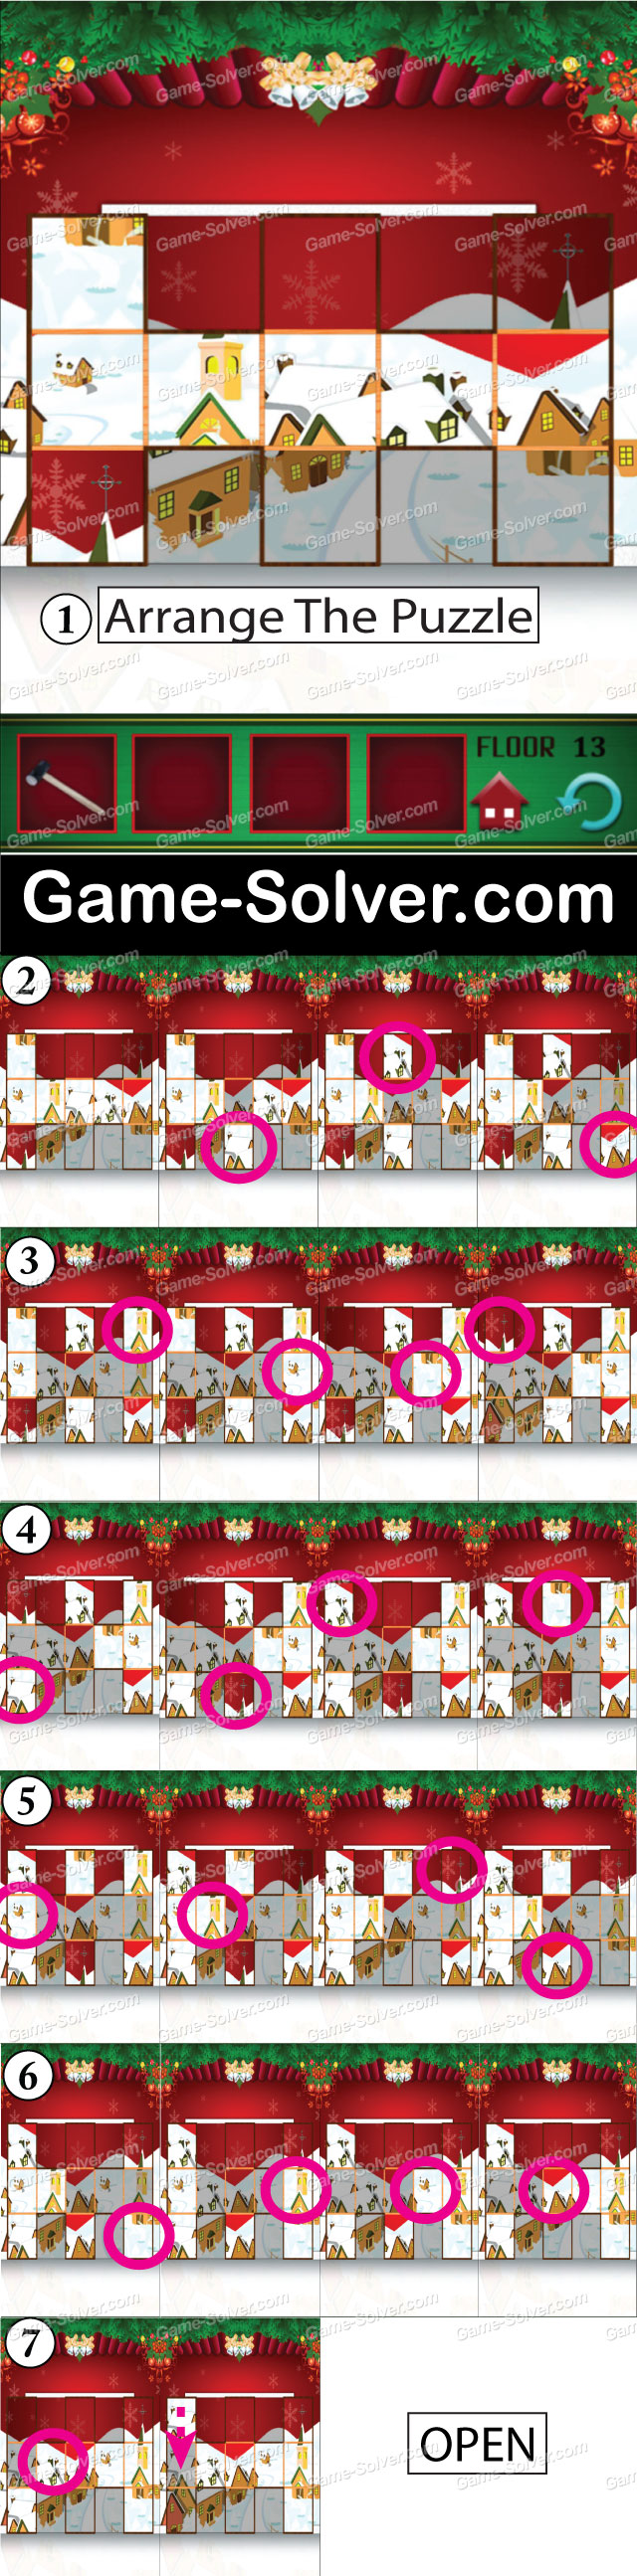 100 Floors Seasons Tower Christmas Level 13 Game Solver